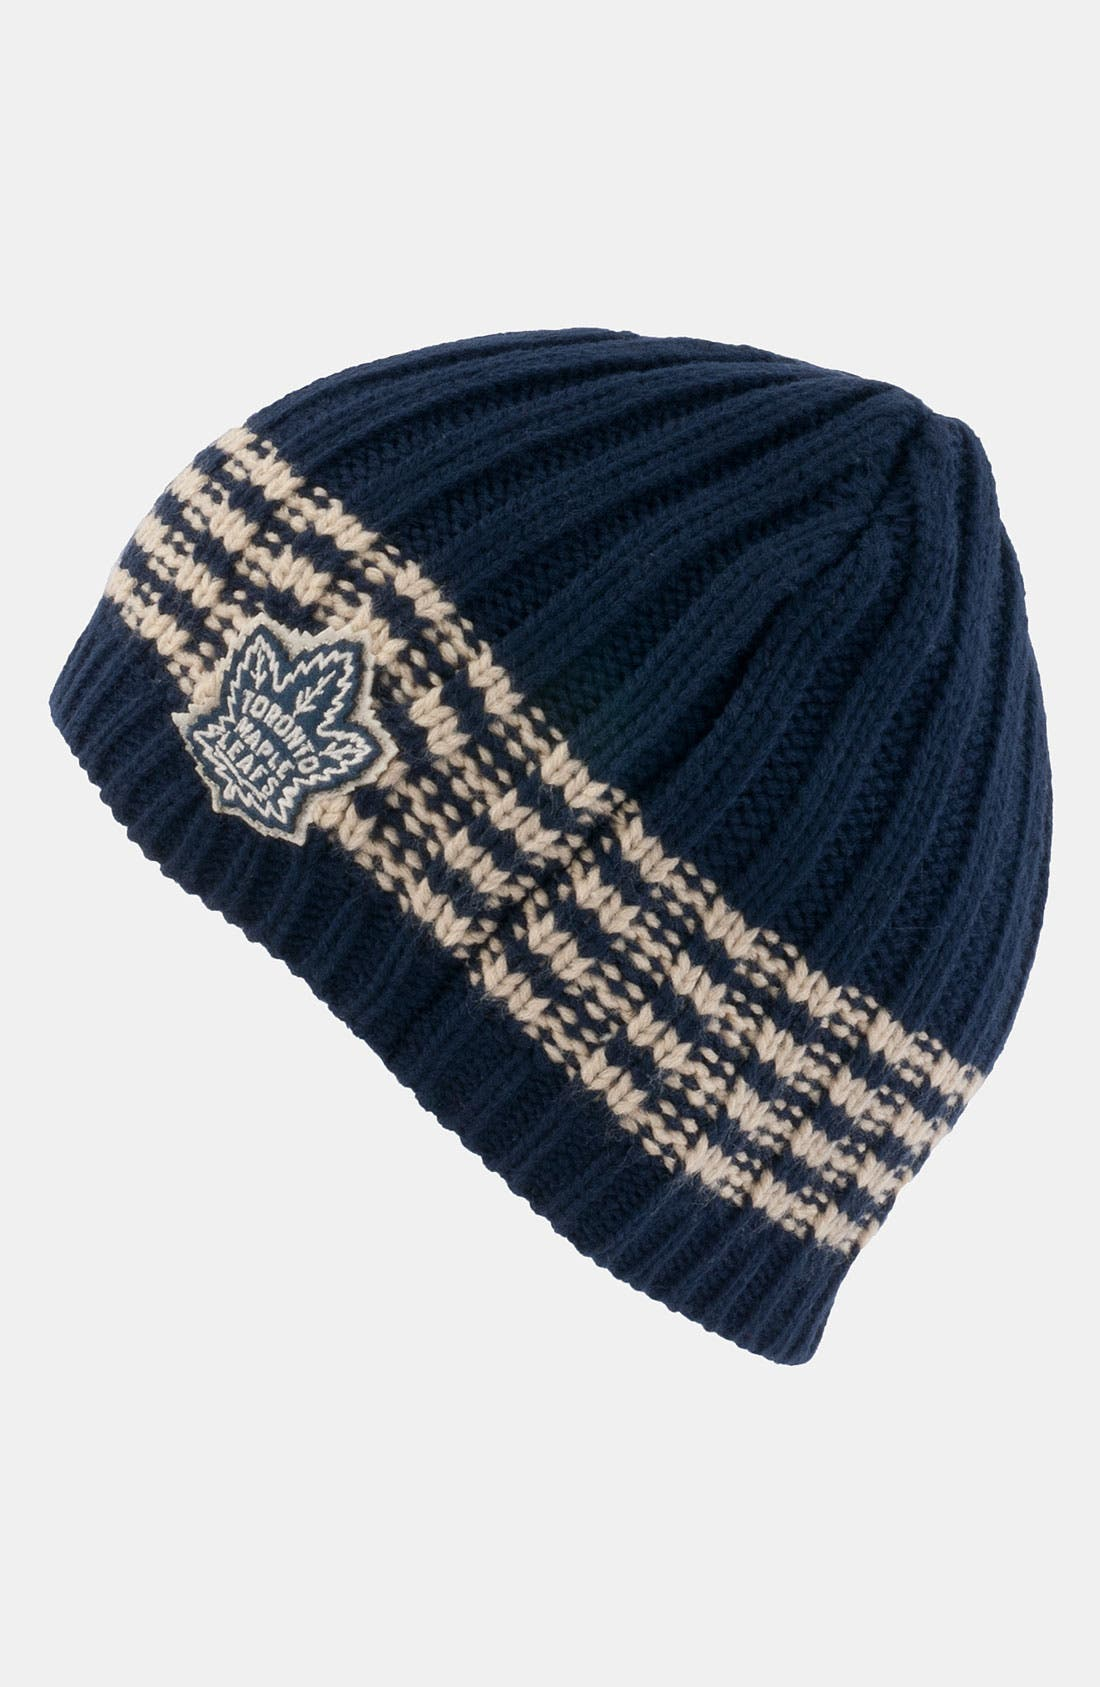 Main Image - American Needle 'Toronto Maple Leafs - Targhee' Knit Hat